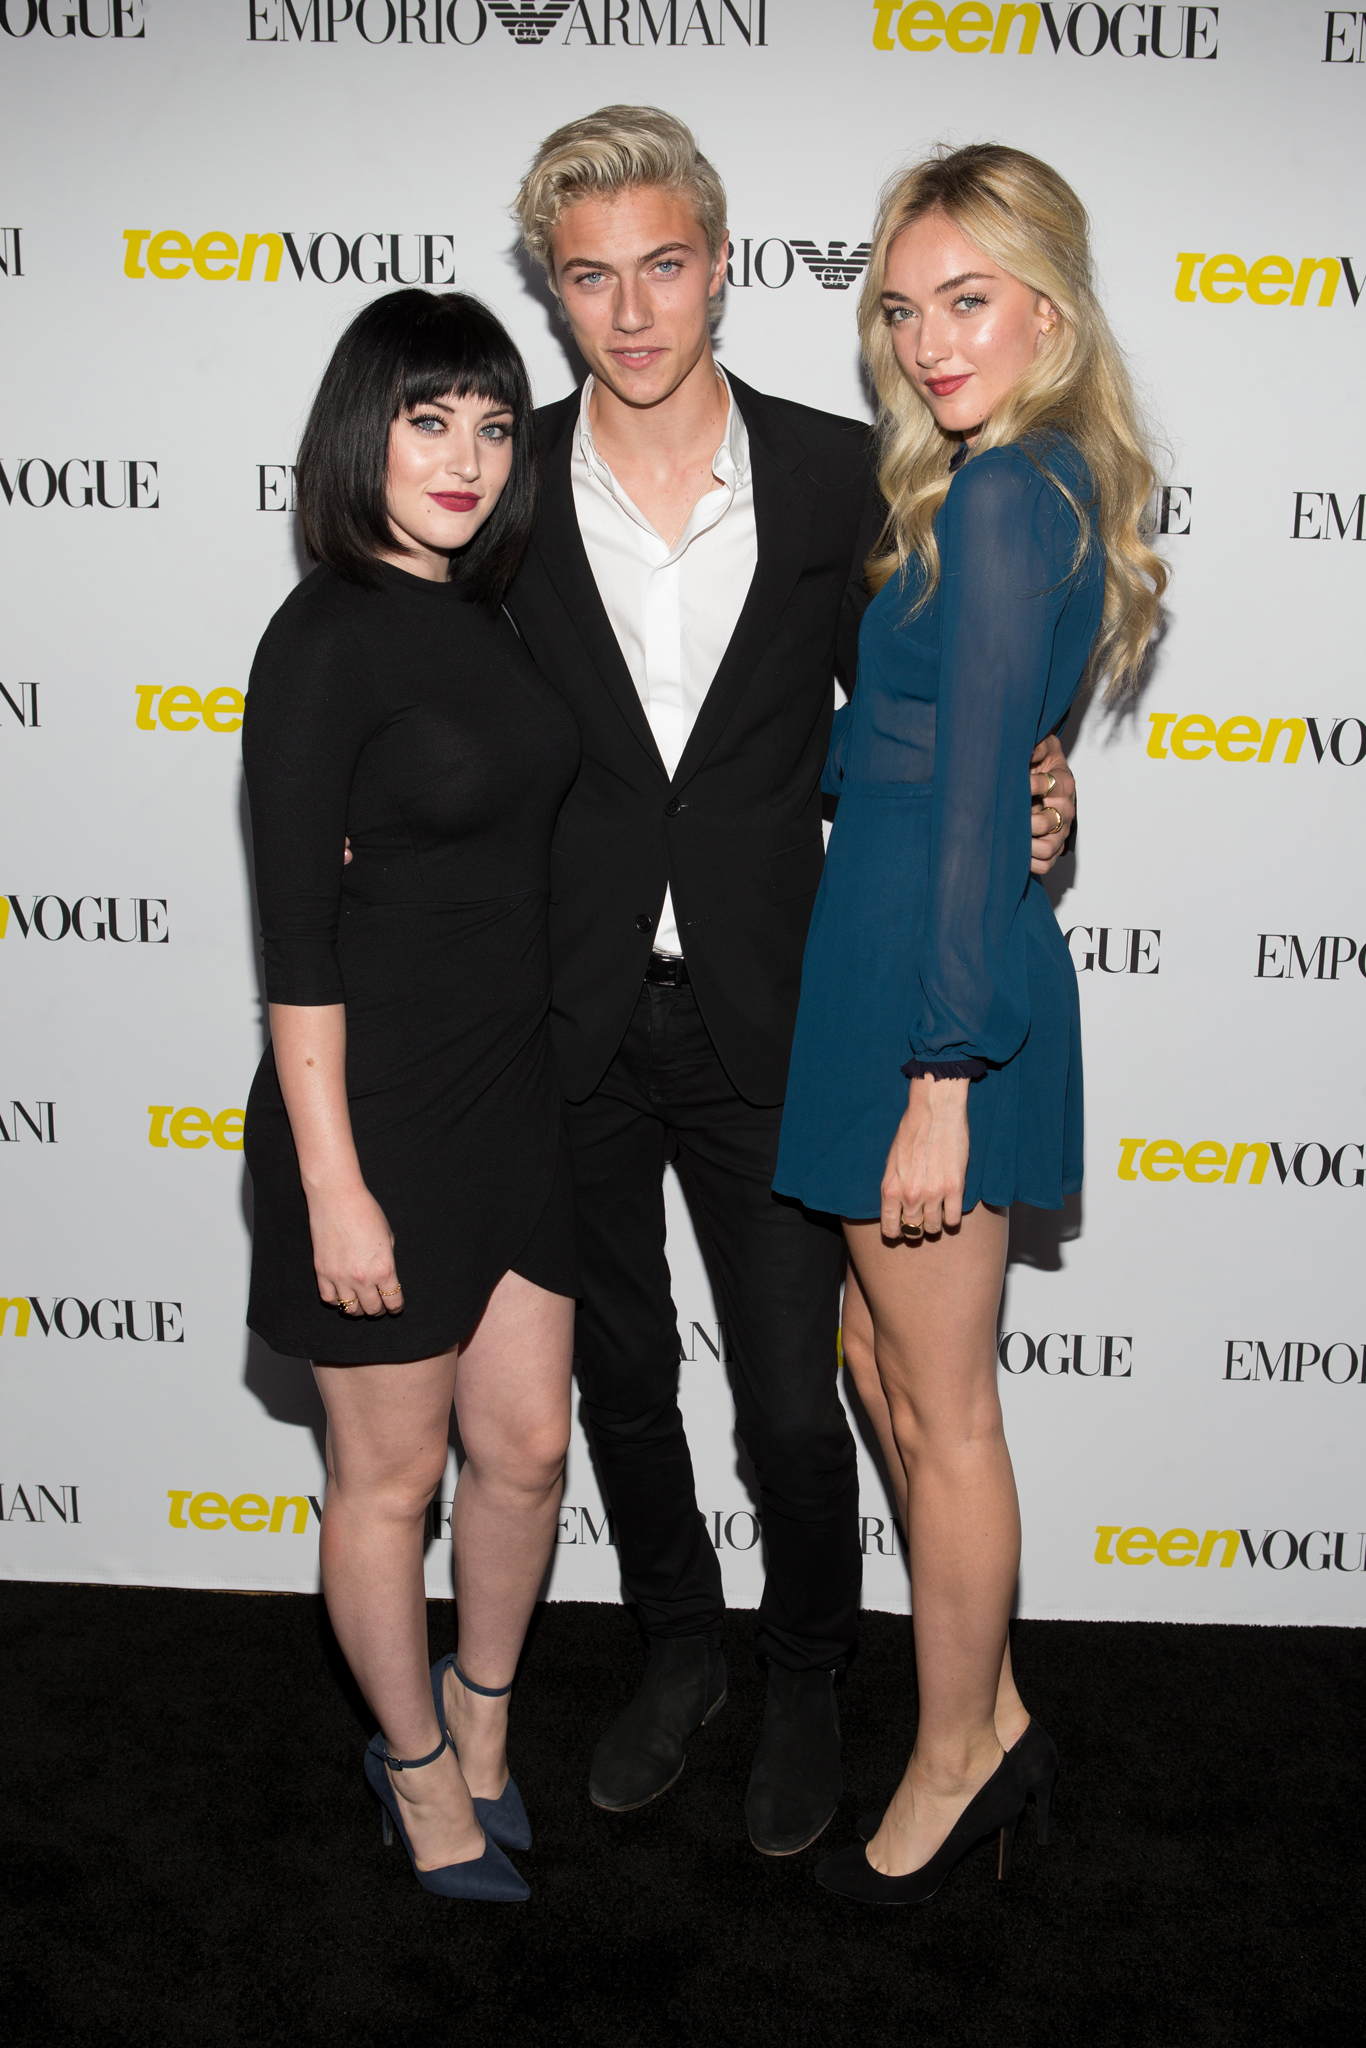 Queen Starlie Smith, Lucky Blue Smith and Daisy Clementine Smith.